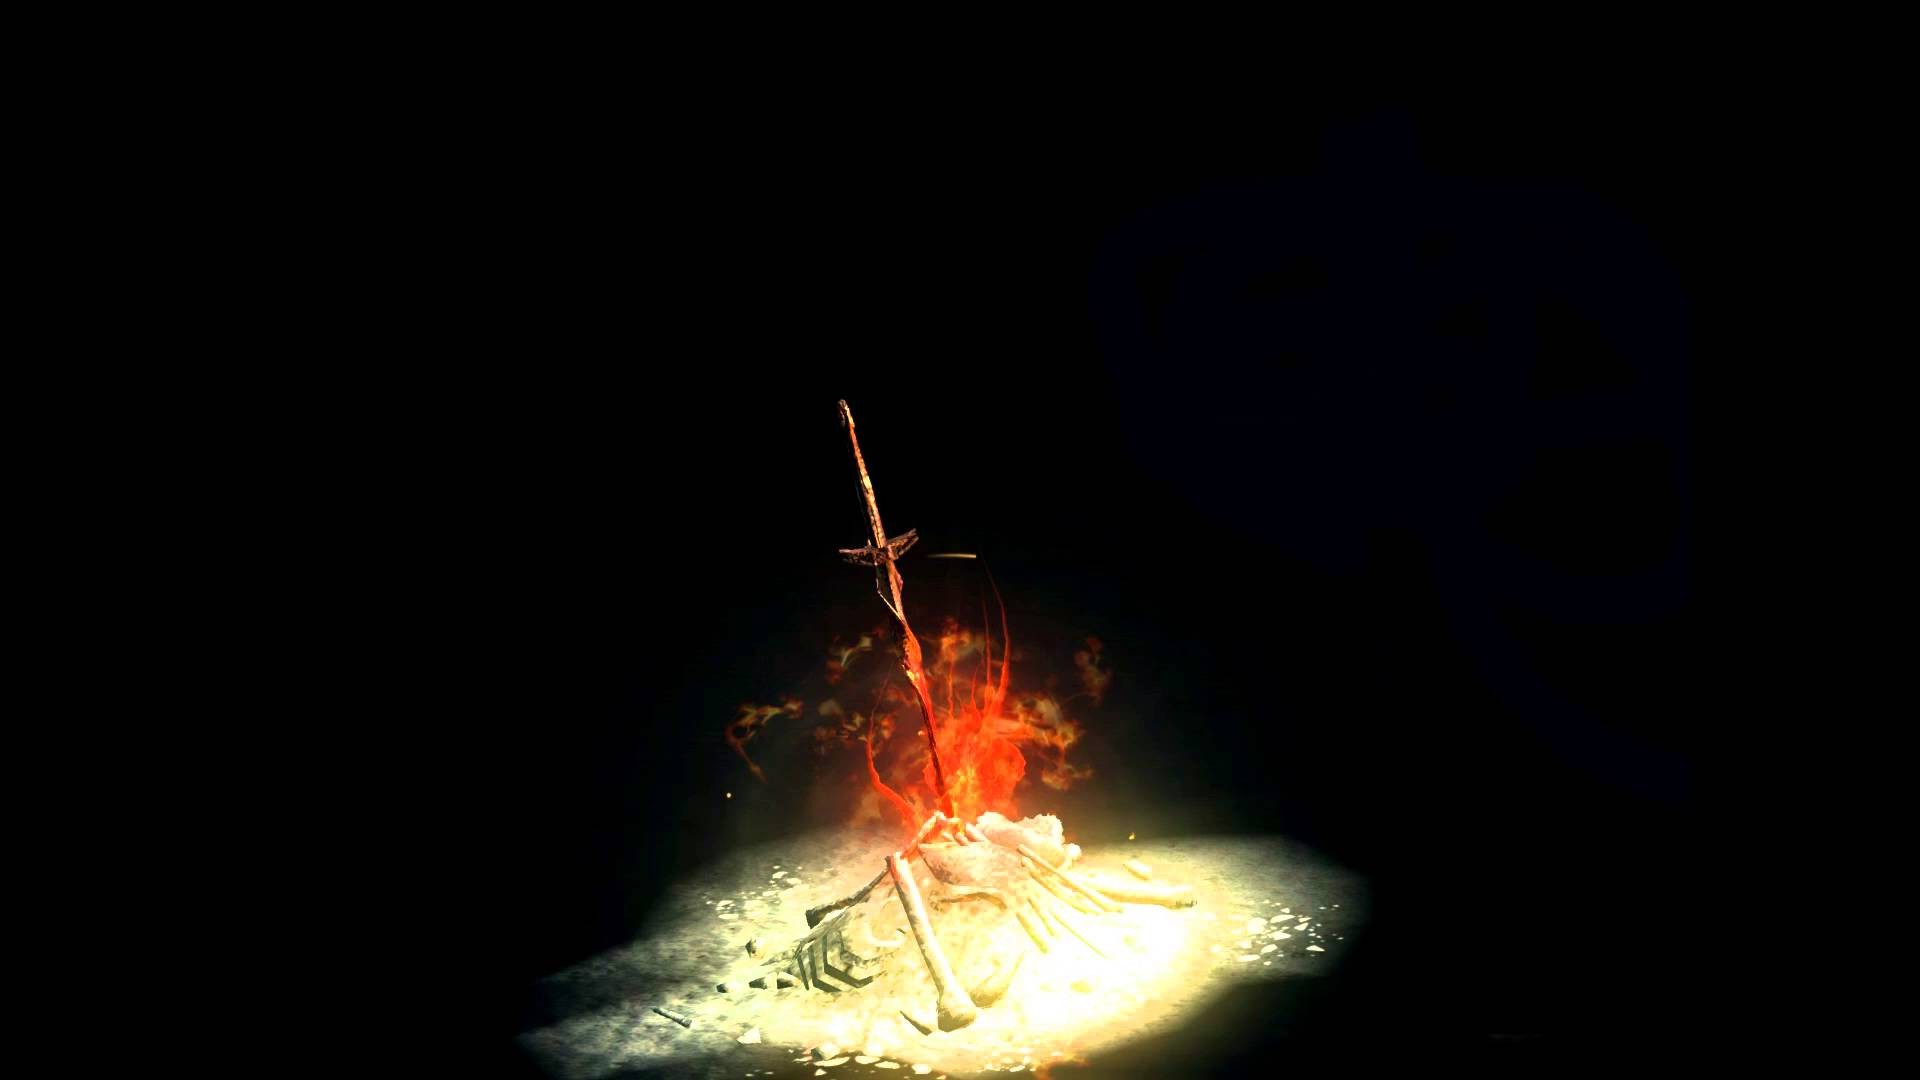 Download Wallpaper Live 3d Android Dark Souls Bonfire Wallpaper 183 ① Download Free Amazing High